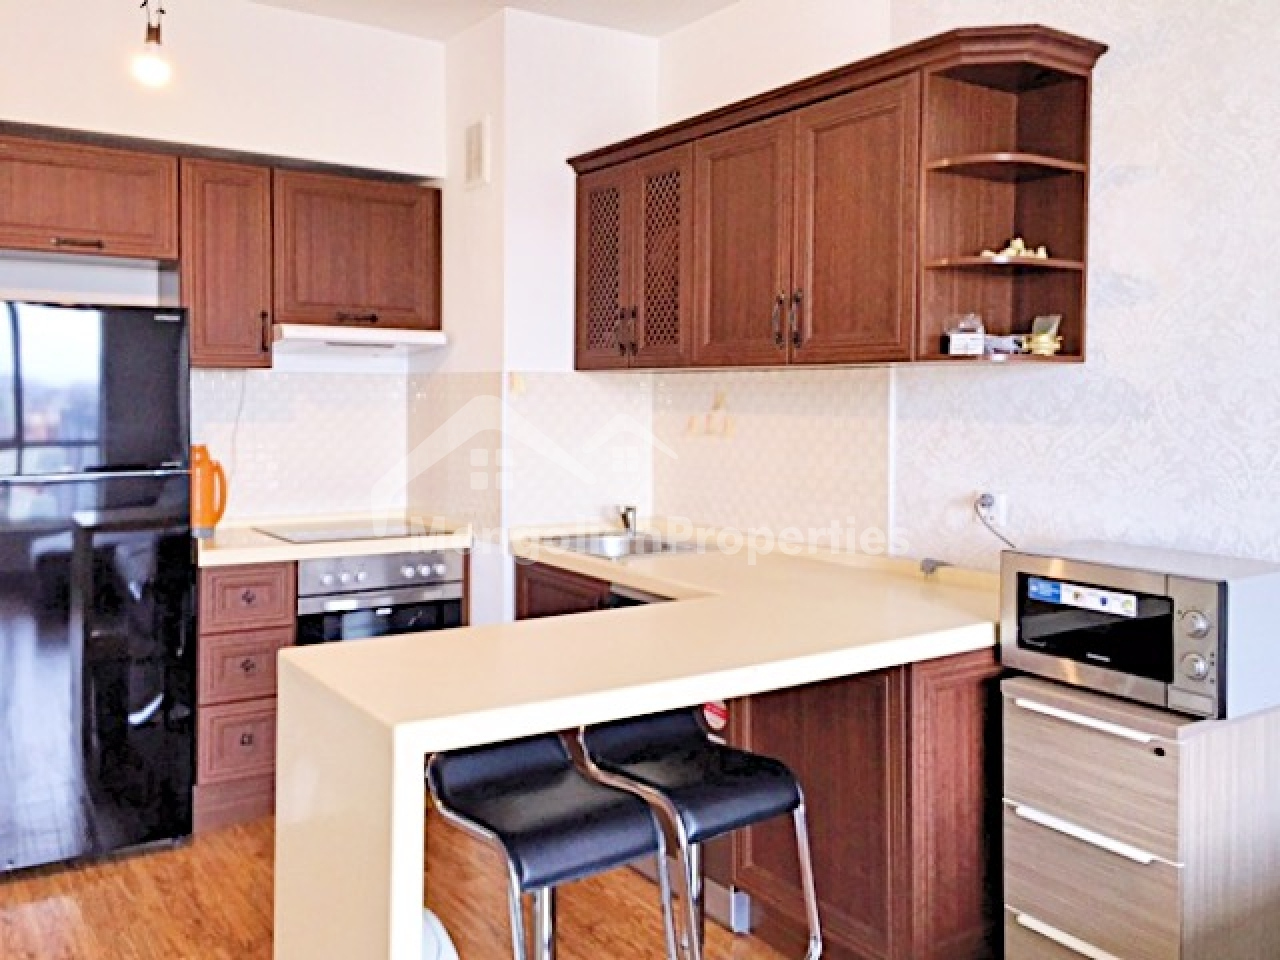 FOR RENT: 2 bedroom apartment in Parkside residence for reasonable price